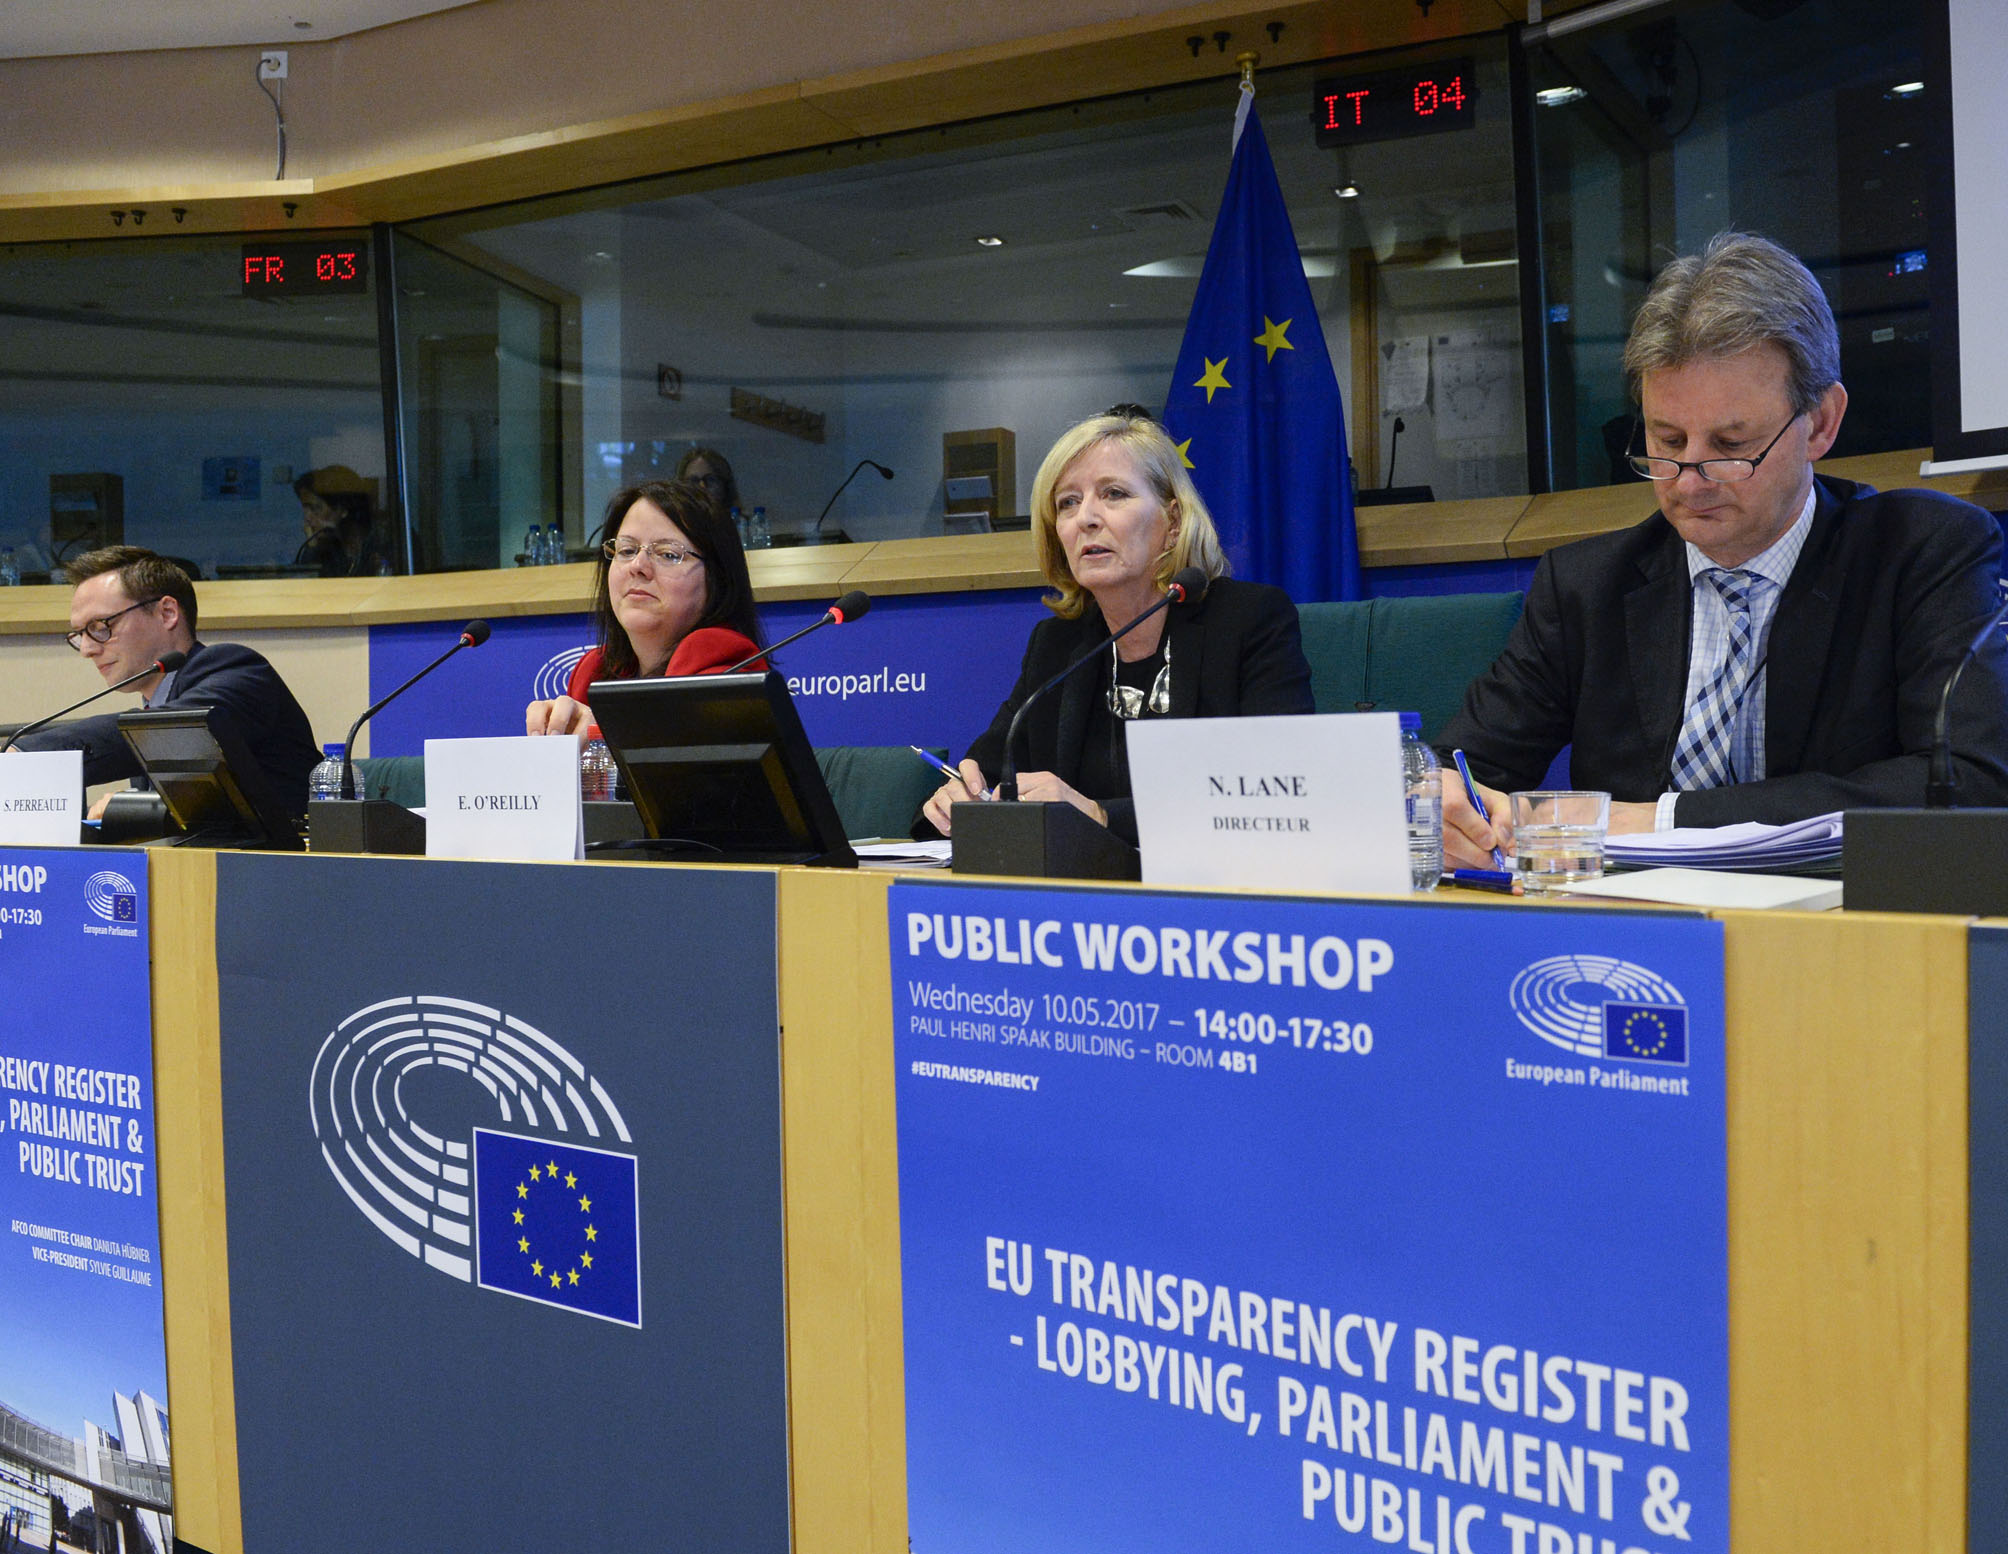 """The European Ombudsman, Emily O'Reilly, speaking at the """"EU Transparency Register – lobbying, Parliament & public trust"""" workshop, which the European Parliament organised in May."""